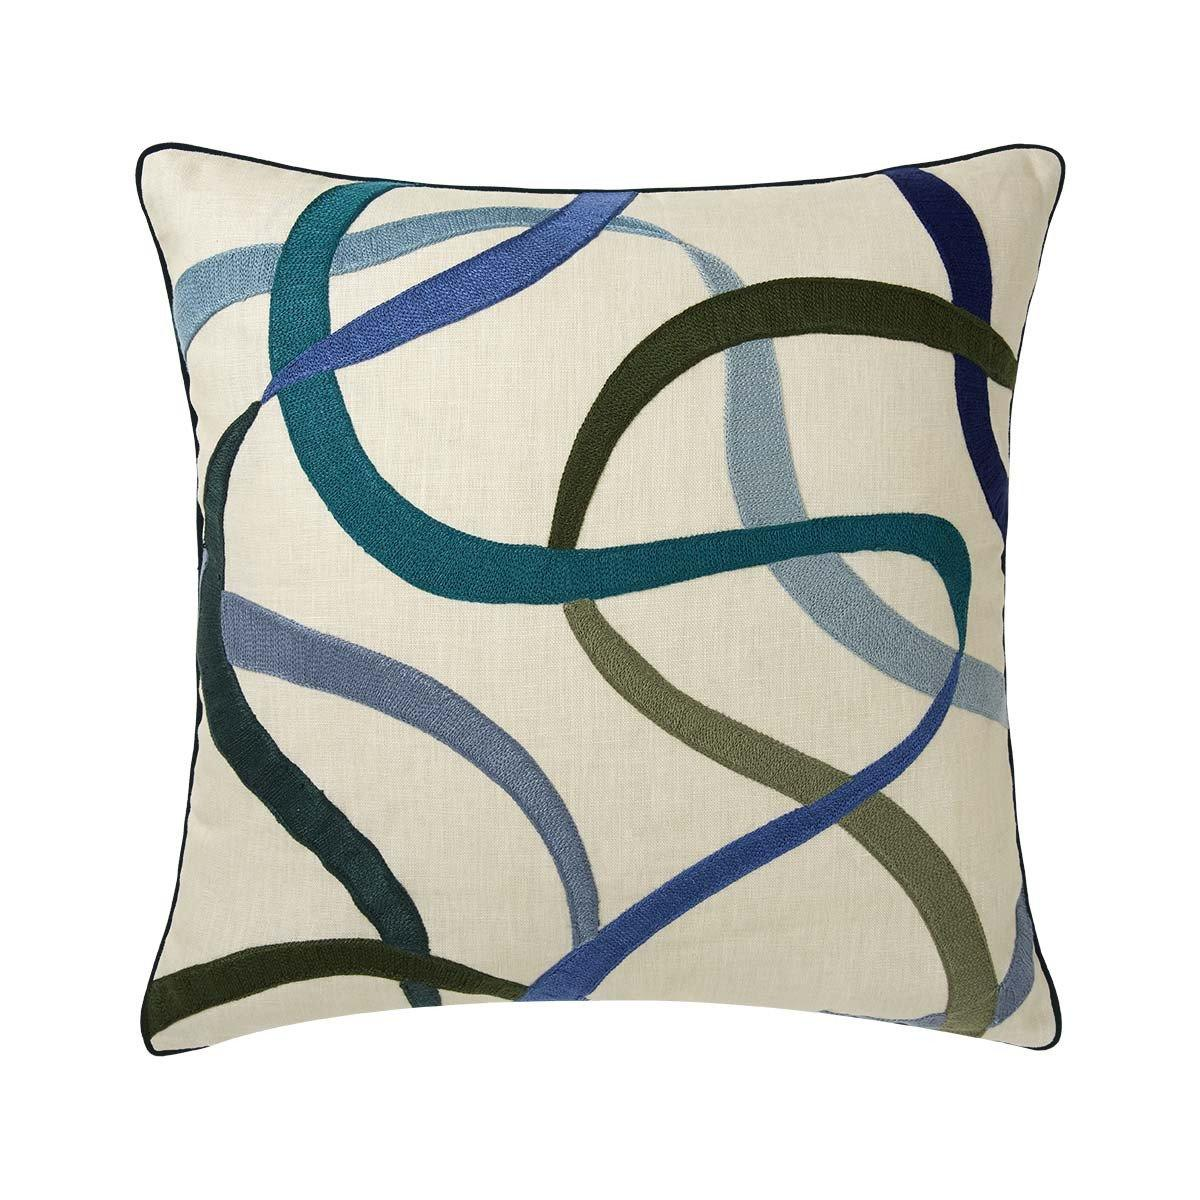 Liesse Jade Decorative Pillow by Iosis